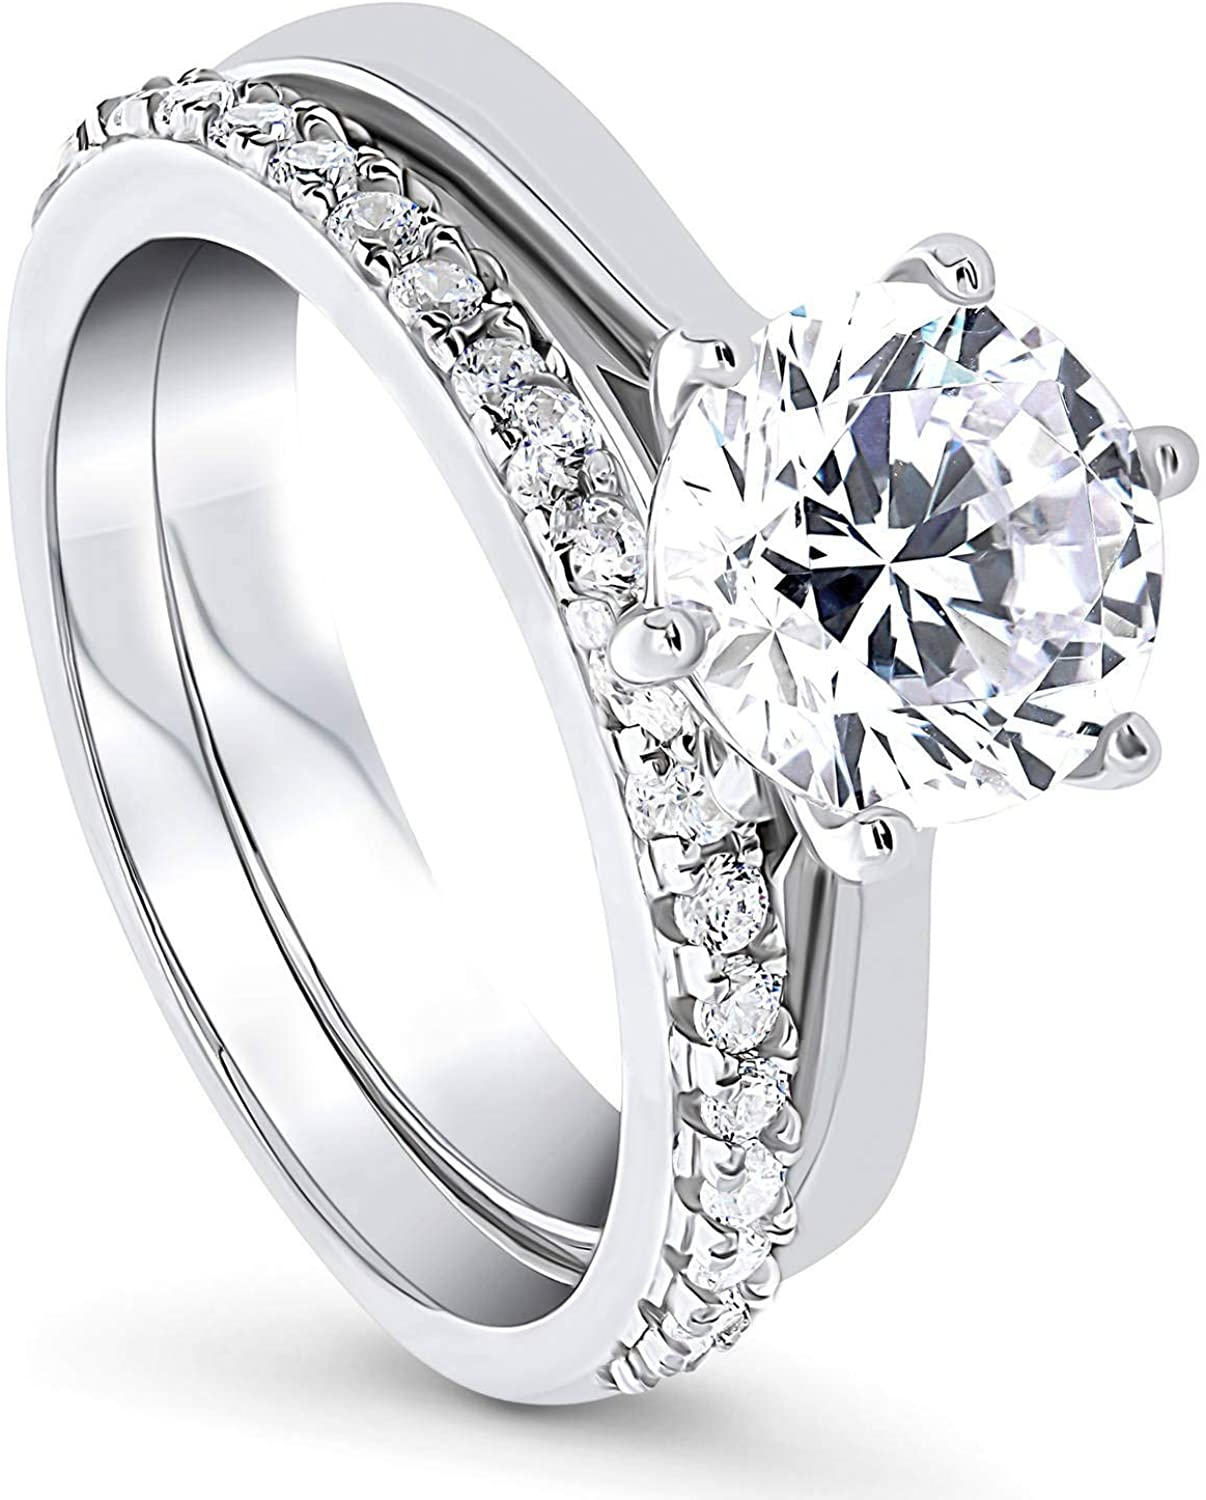 BERRICLE Rhodium Plated Sterling Silver Round Cubic Zirconia CZ Solitaire Engagement Wedding Ring Set 2.36 CTW